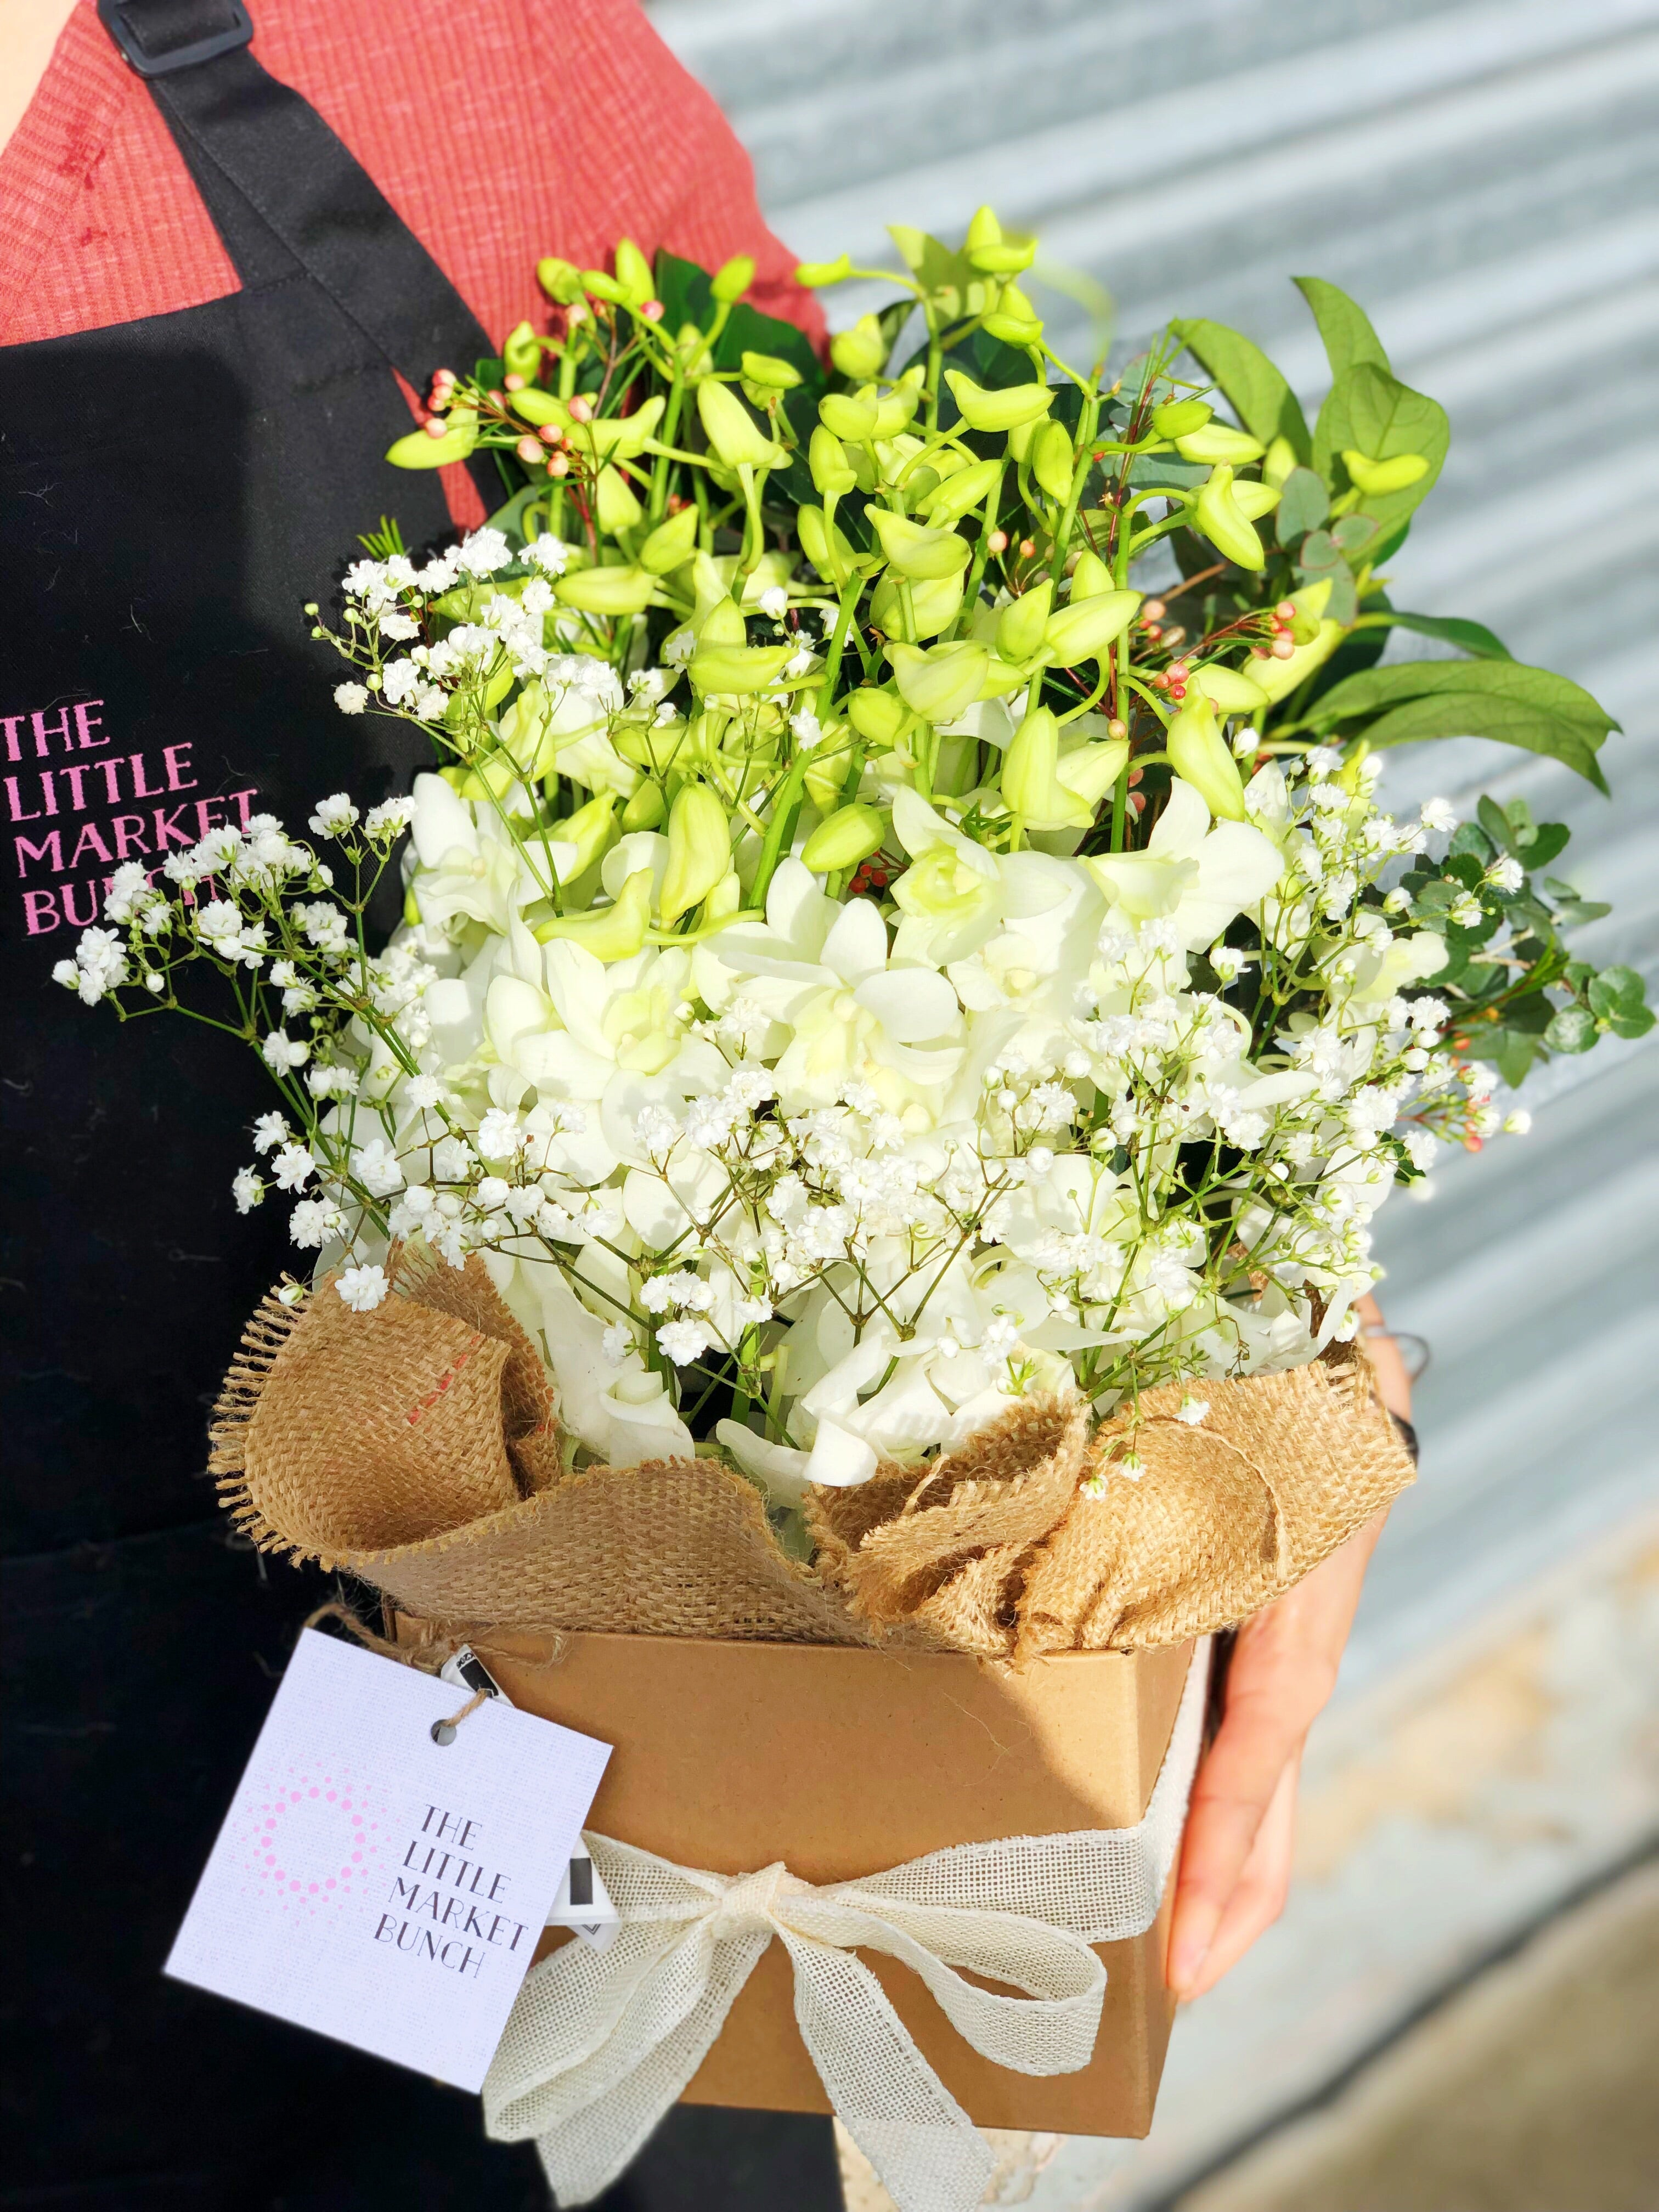 The little market bunch white funeral sympathy orchid box